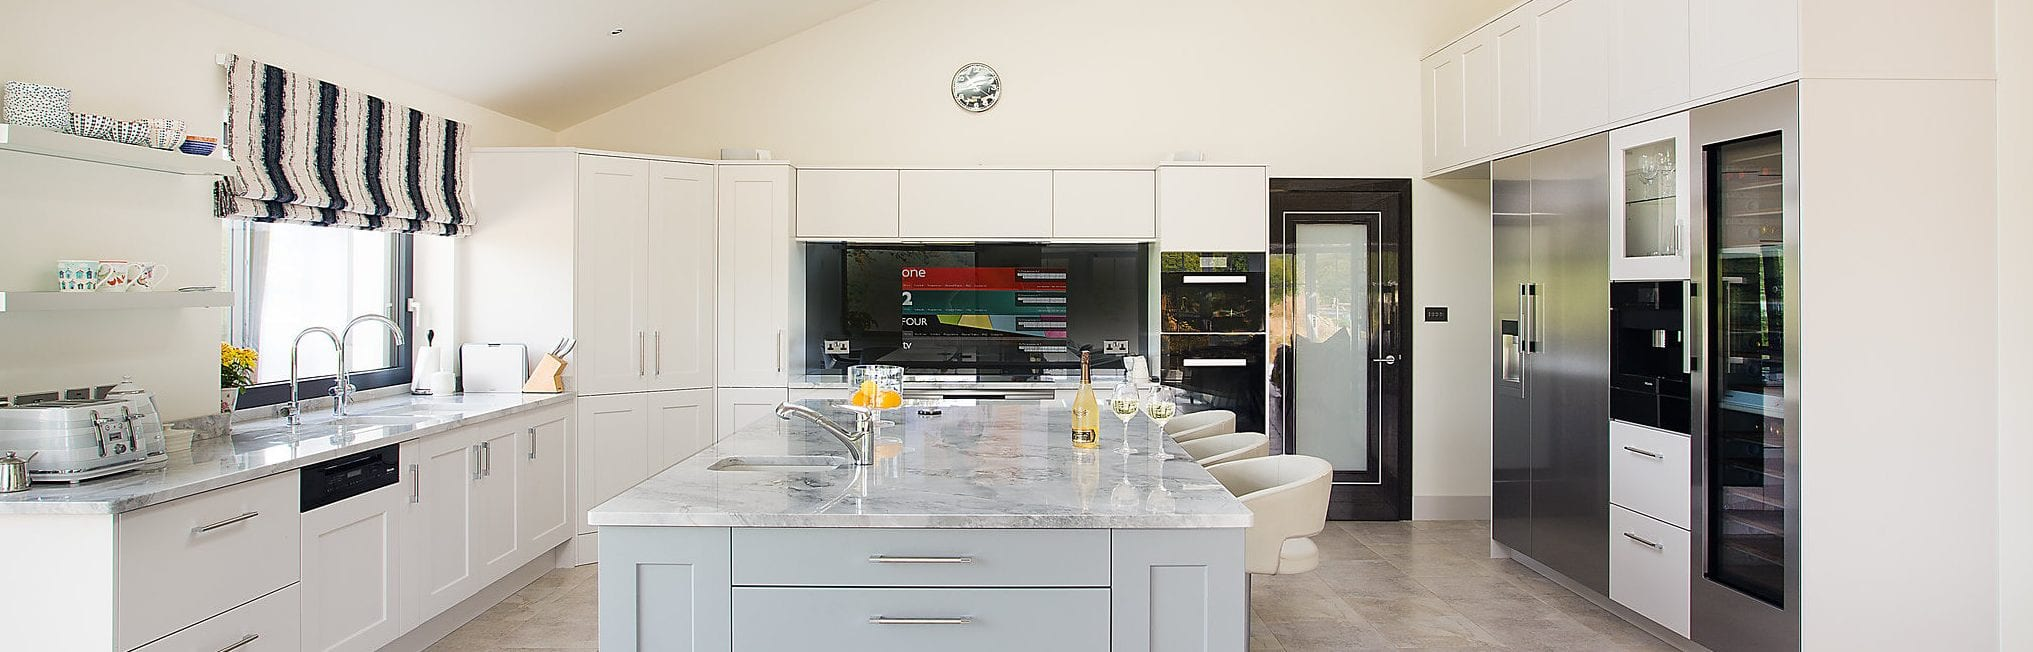 Classic English Kitchen Handmade By Conquest